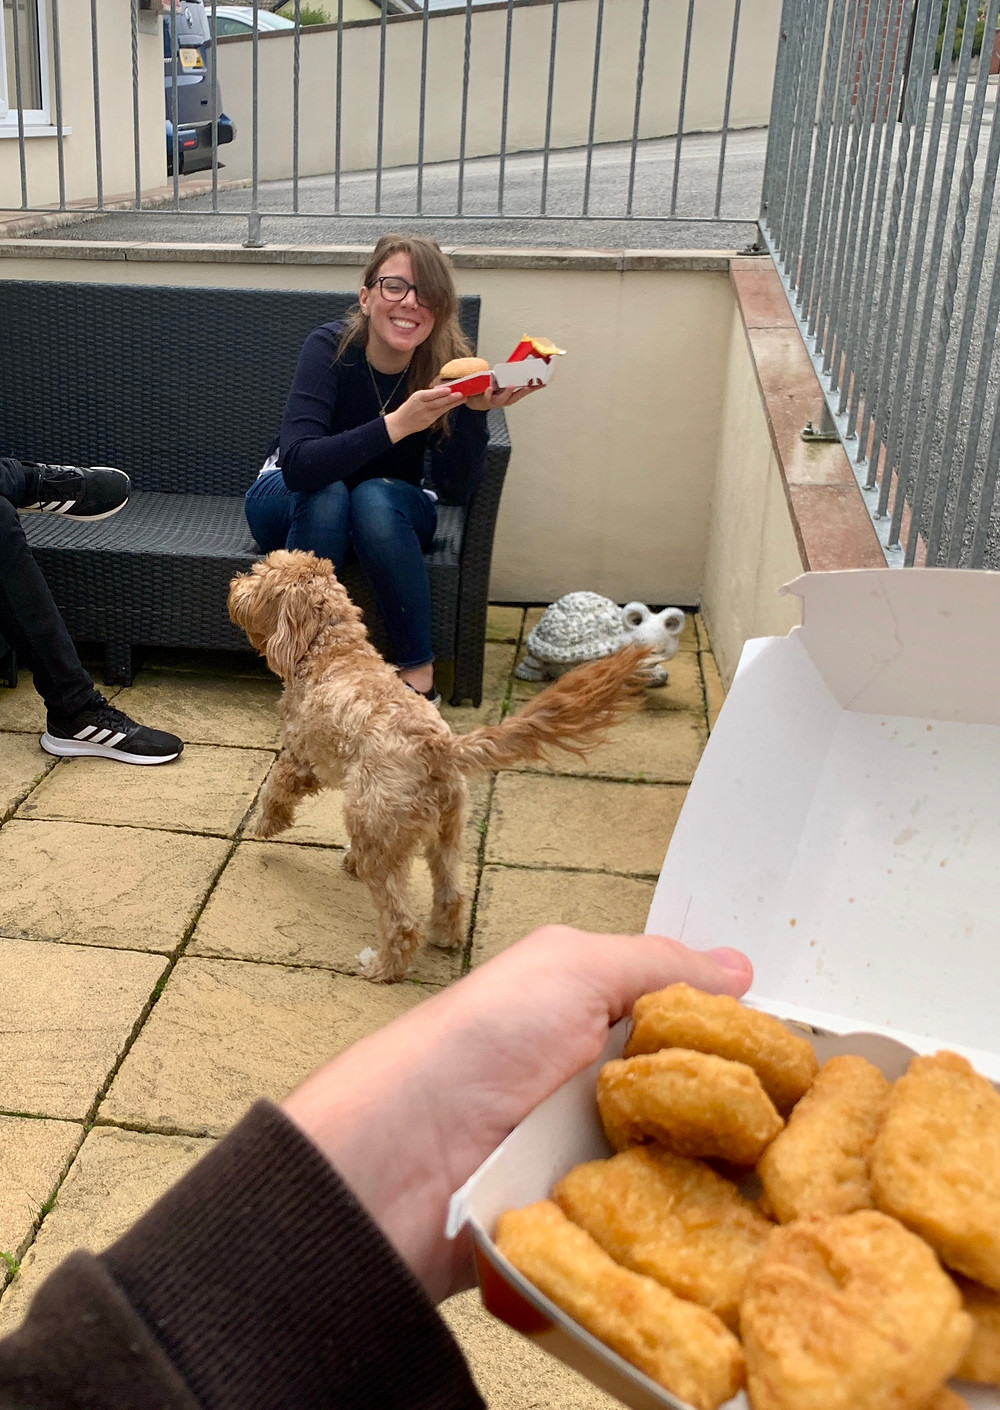 Ross's wrist holding a box of nuggets, with his sister in the background with a big mac burger